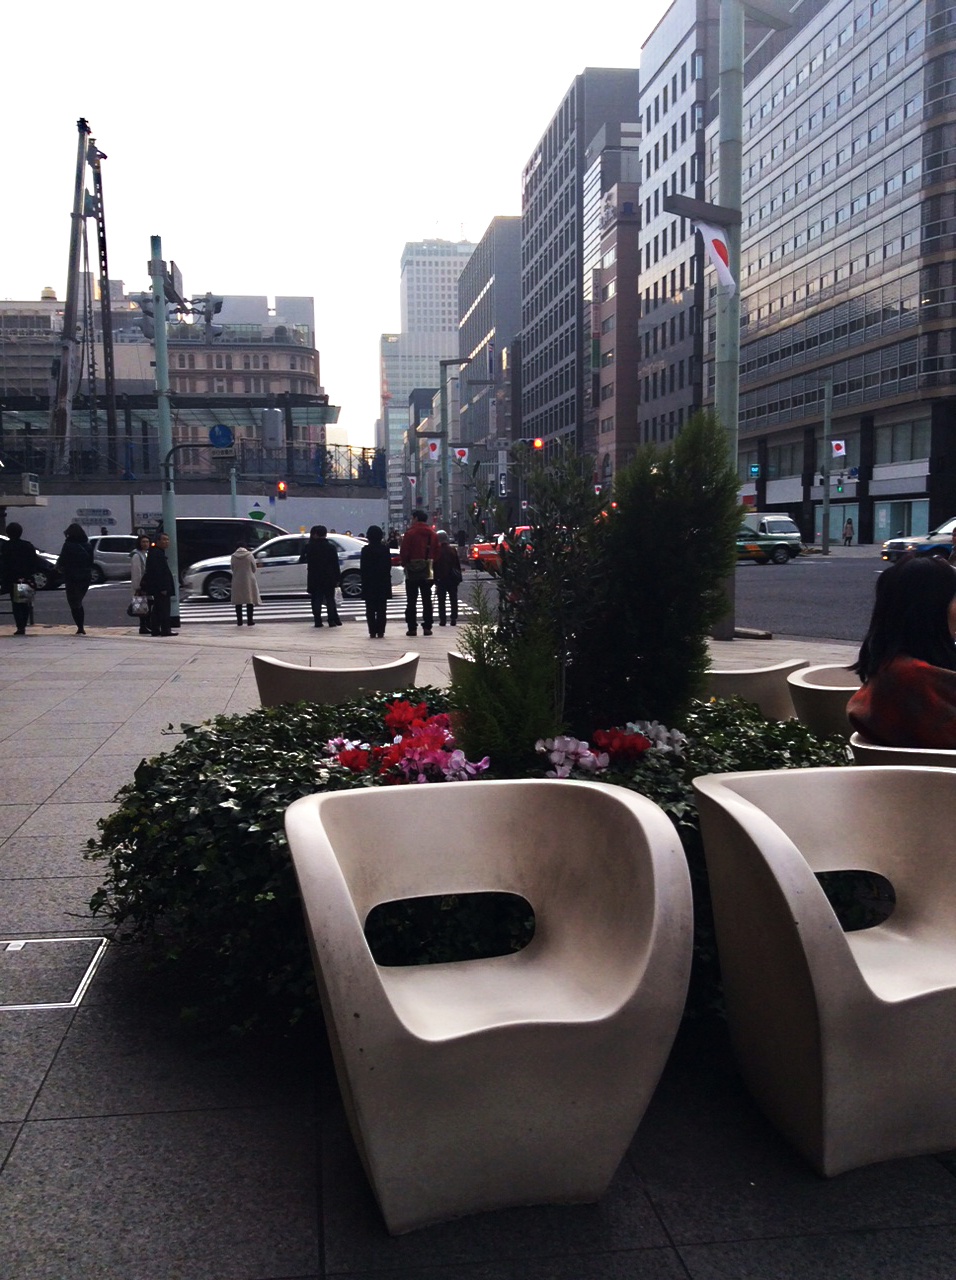 moulded white chairs surround a display of flowers in this busy street. There are high-rise buildings on both sides though only the right side is visible. There is a crossing in the mid-ground with people waiting for the lights to change.